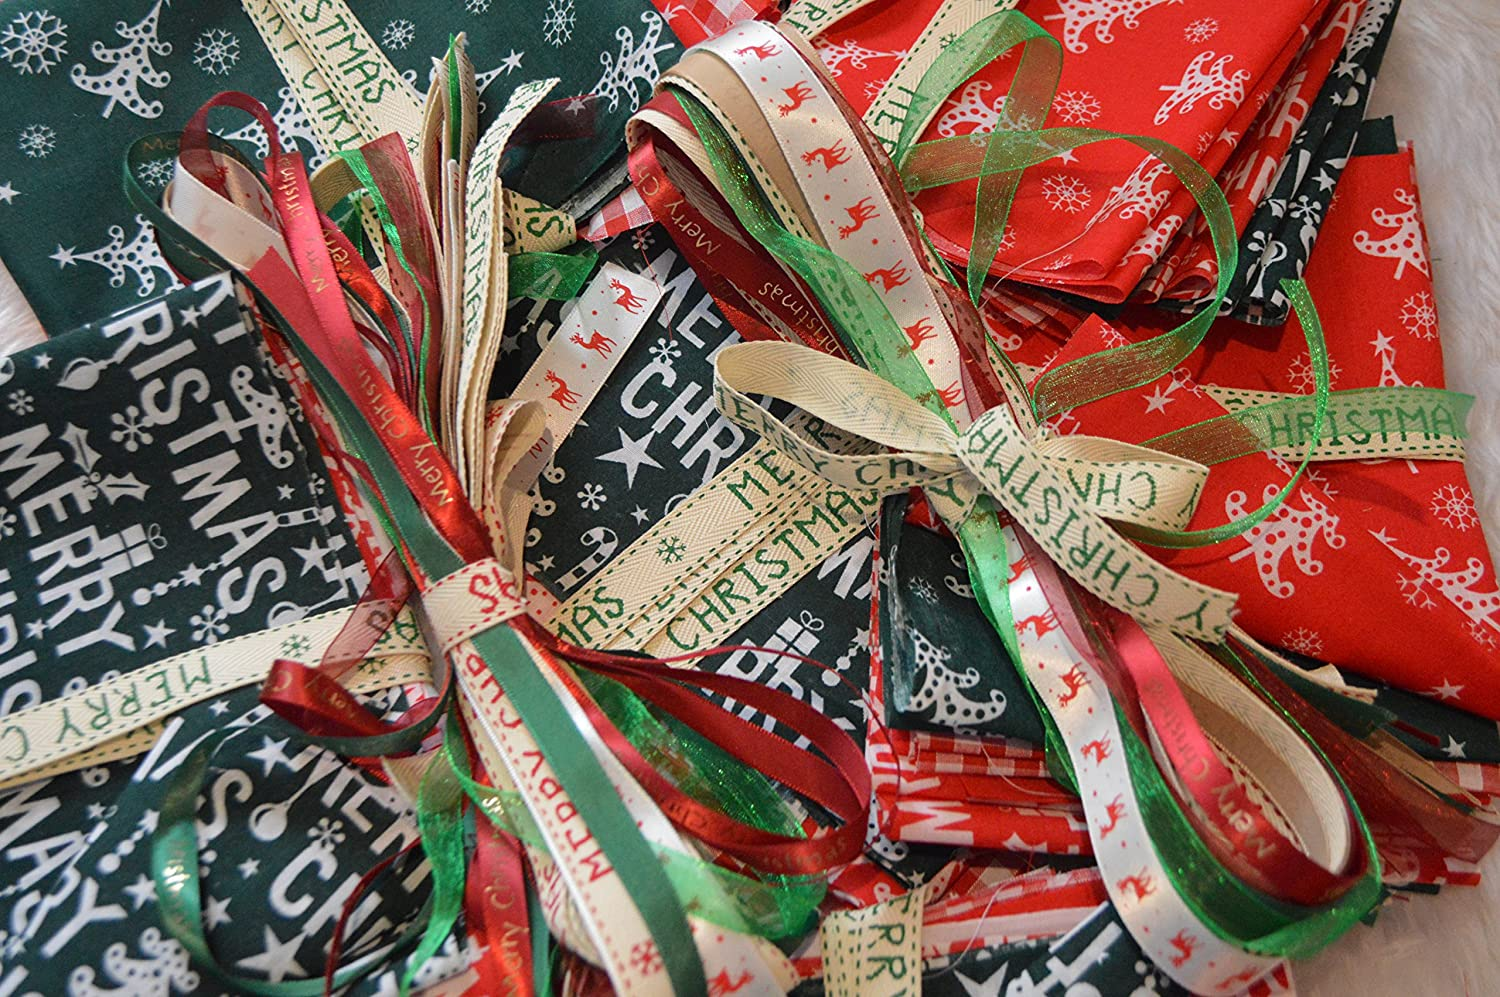 Christmas Fabric Bag 100G Bundle For Craft Remnants + Christmas Ribbons 15 x 1 Meter Lengths Xmas Craft Set The Cut & Sew Company